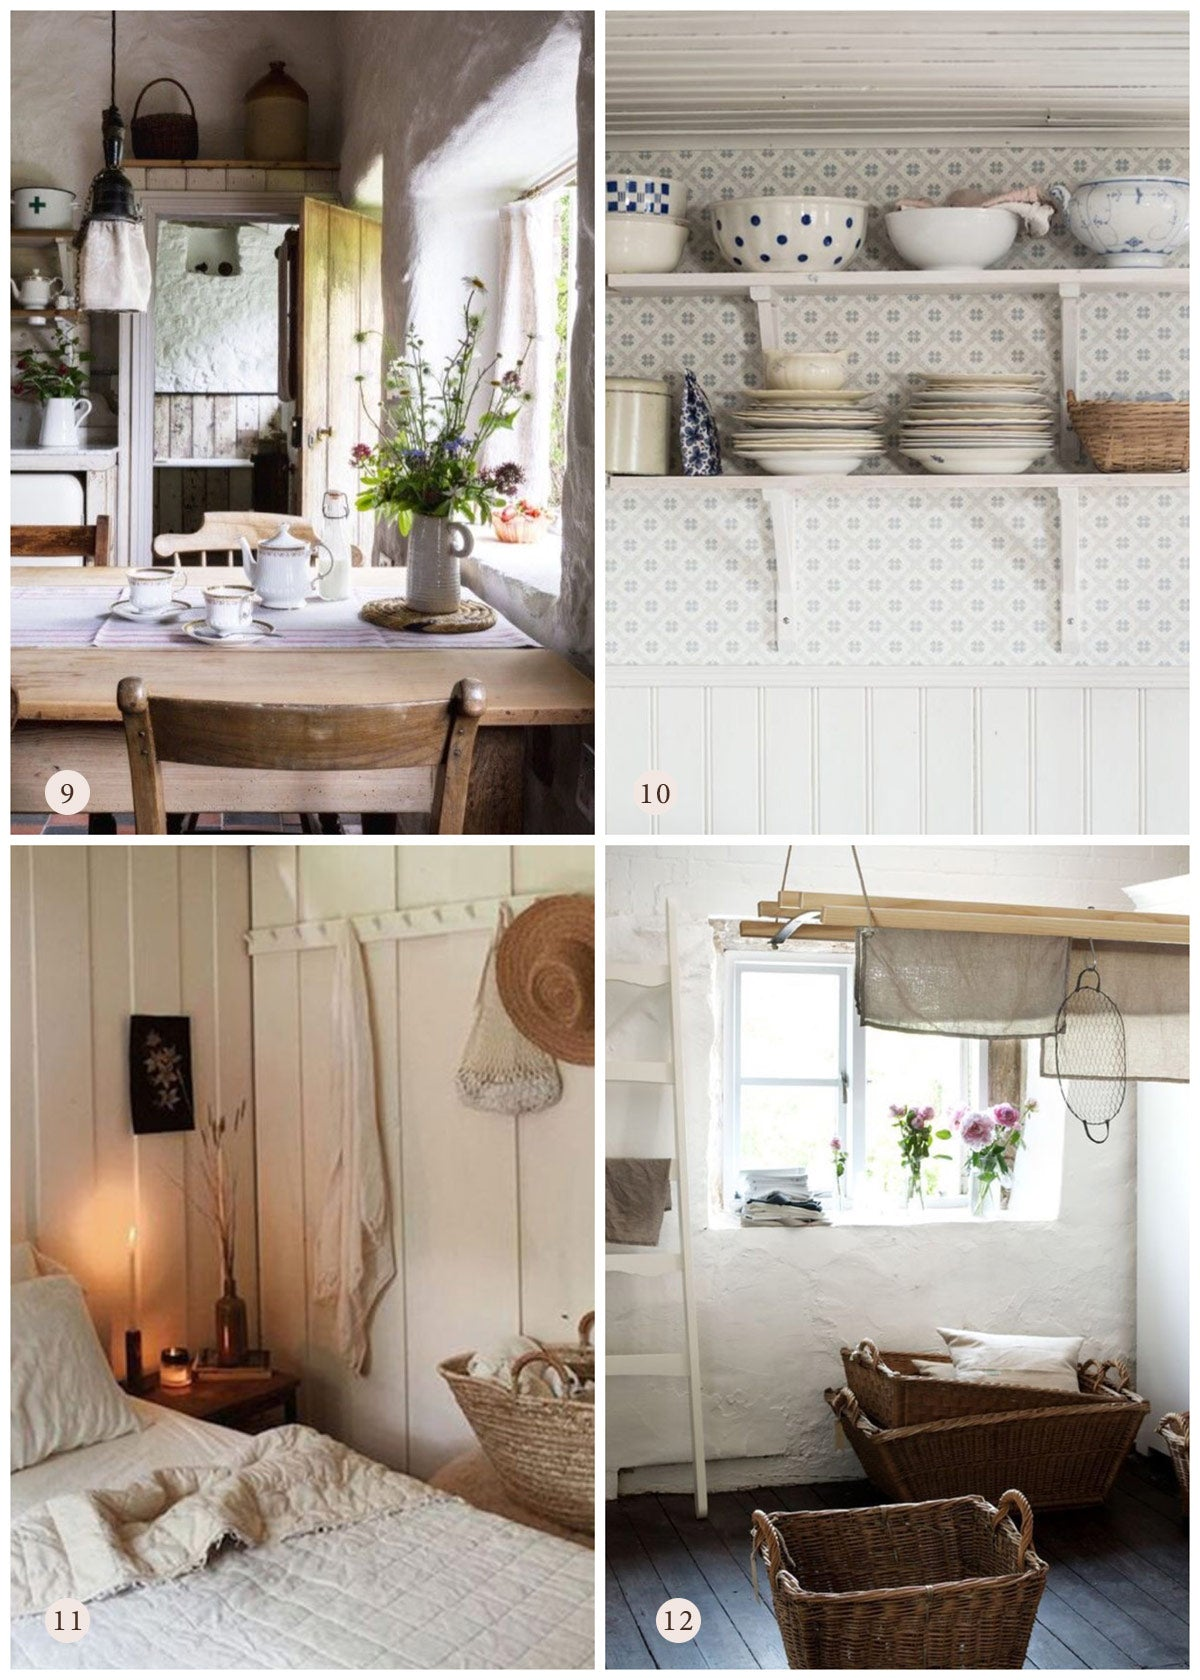 Romantic Country Home Inspirations & Decor Ideas